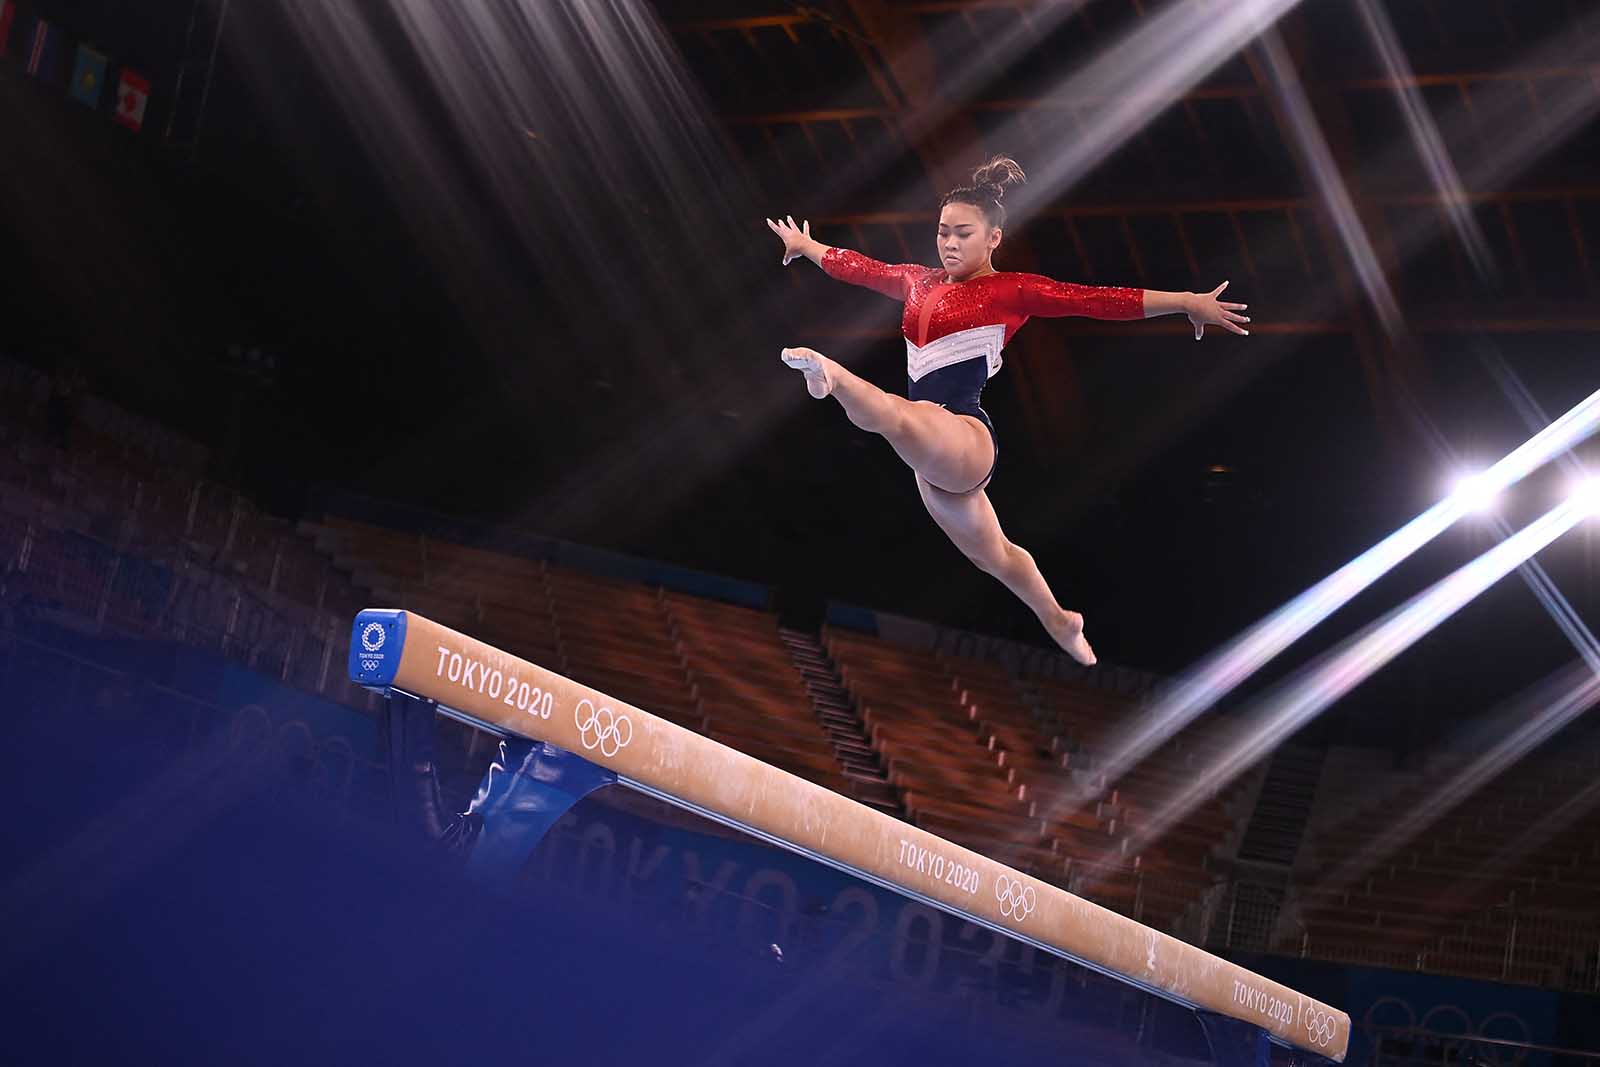 Sunisa Lee of Team USA competes in the balance beam event of the artistic gymnastics women's team final on July 27.